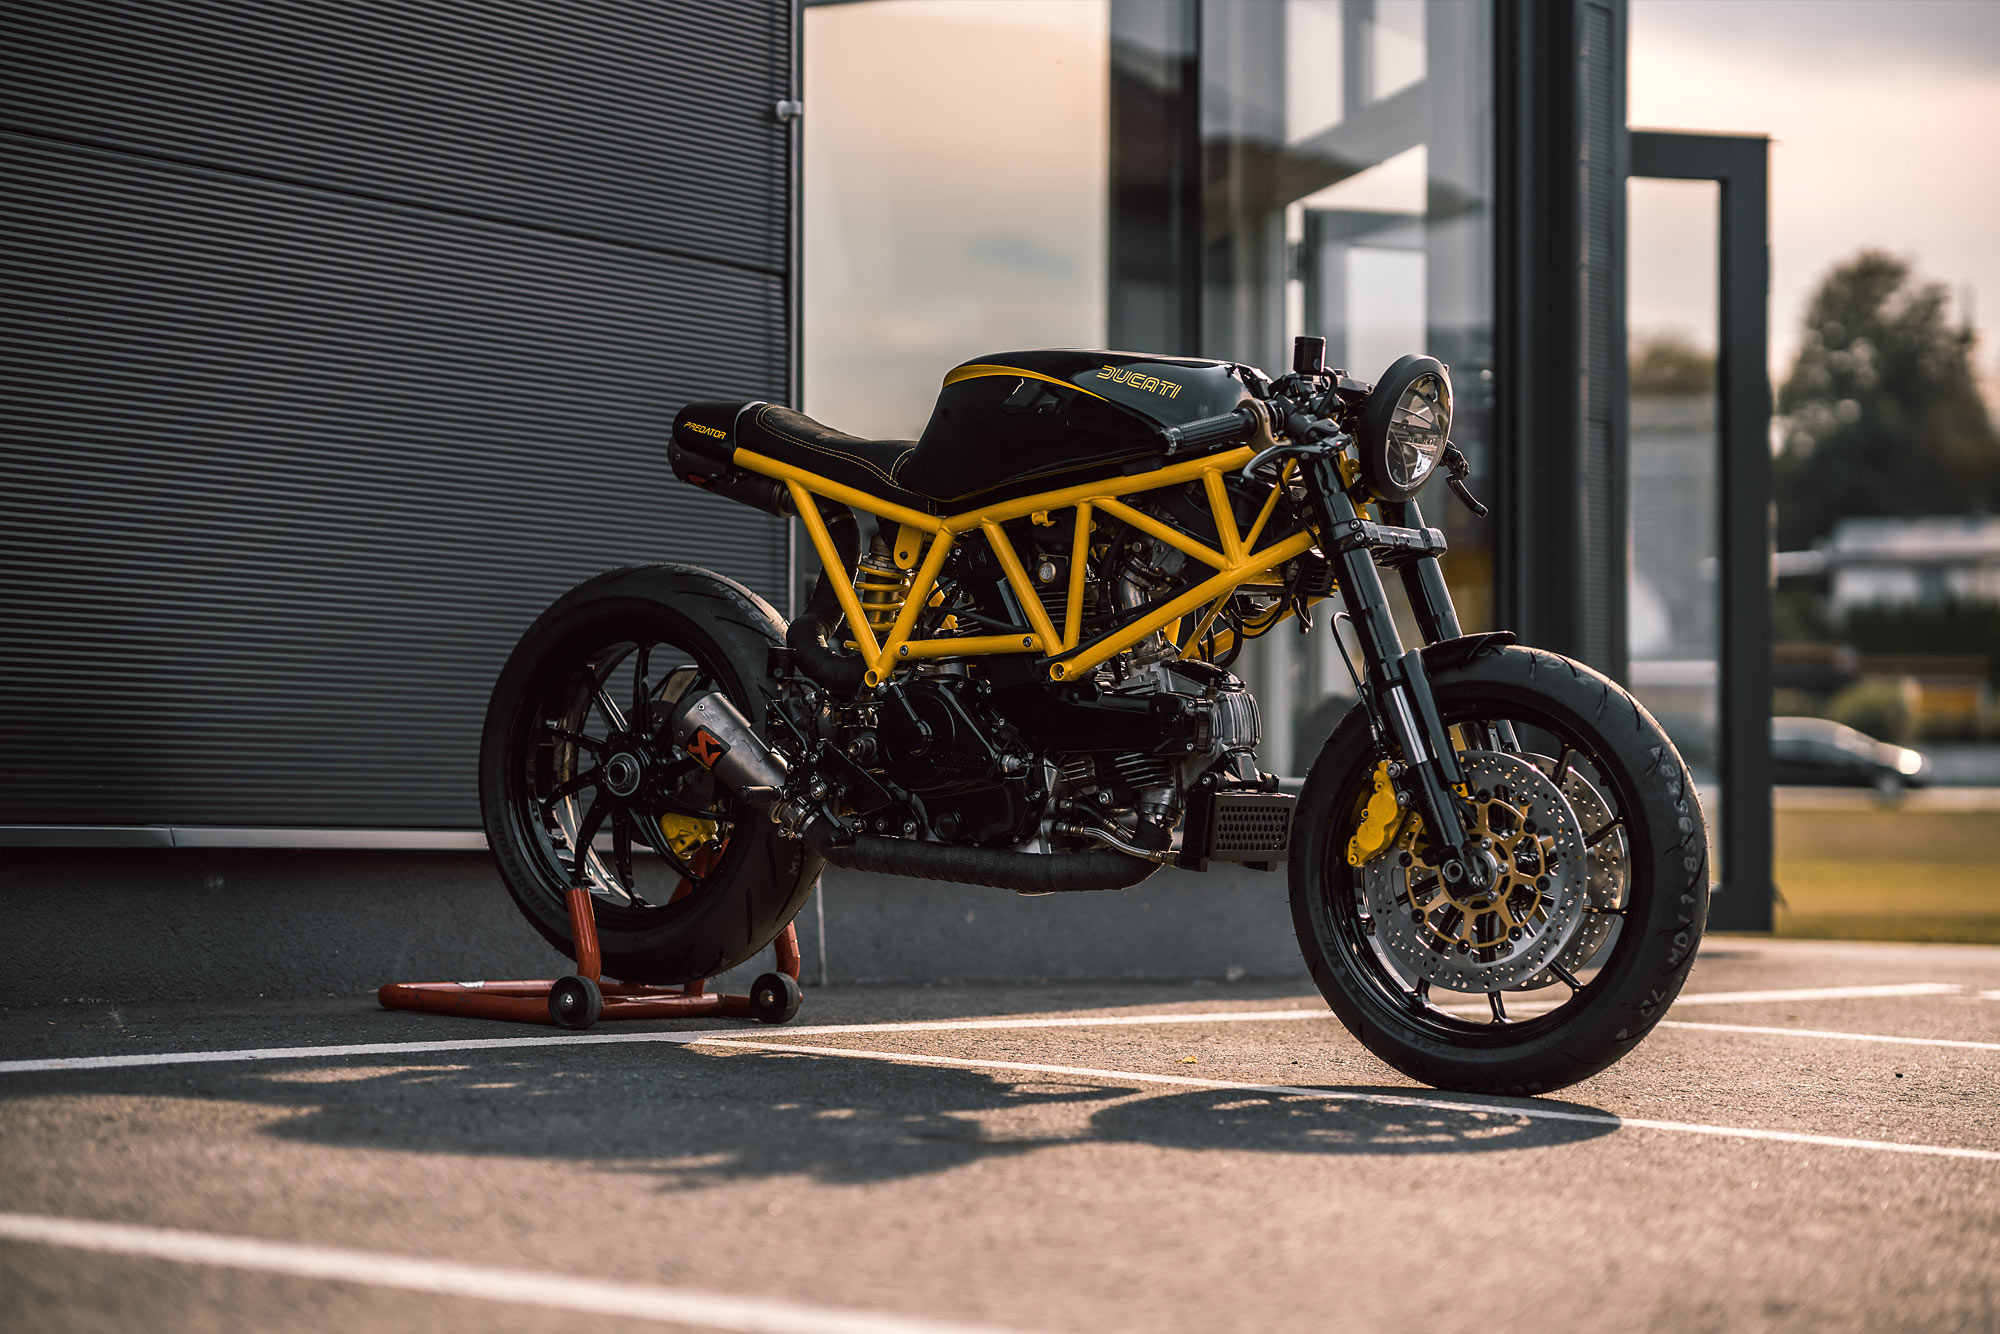 Taking some more parts from the Ducati catalogue meant a set of 1098 rearsets were selected and make for an aggressive riding position after plenty of ...